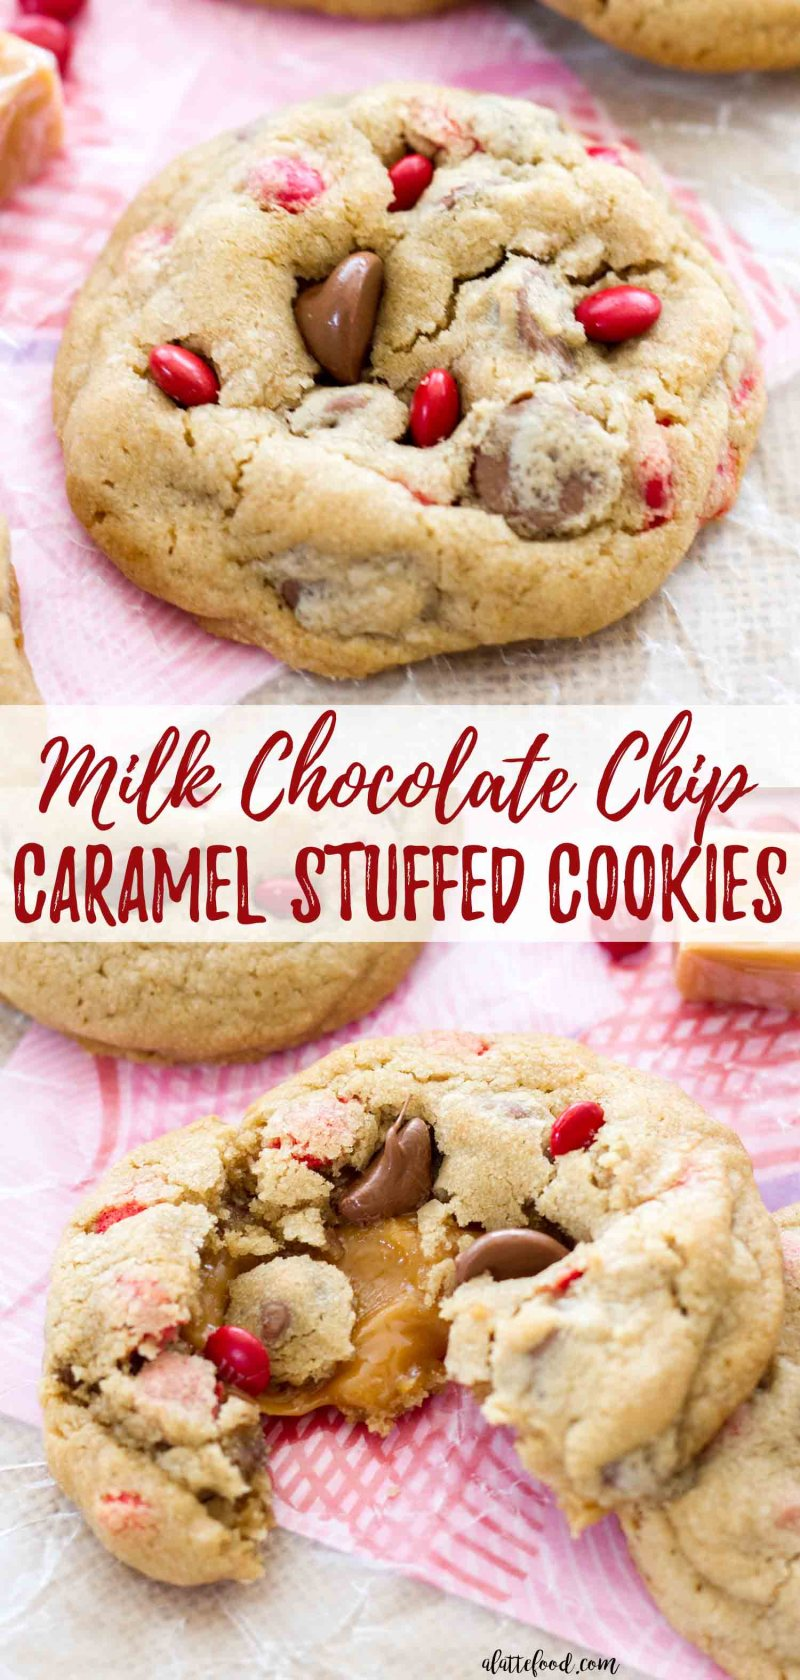 Milk Chocolate Chip Gooey Caramel Stuffed Cookies collage